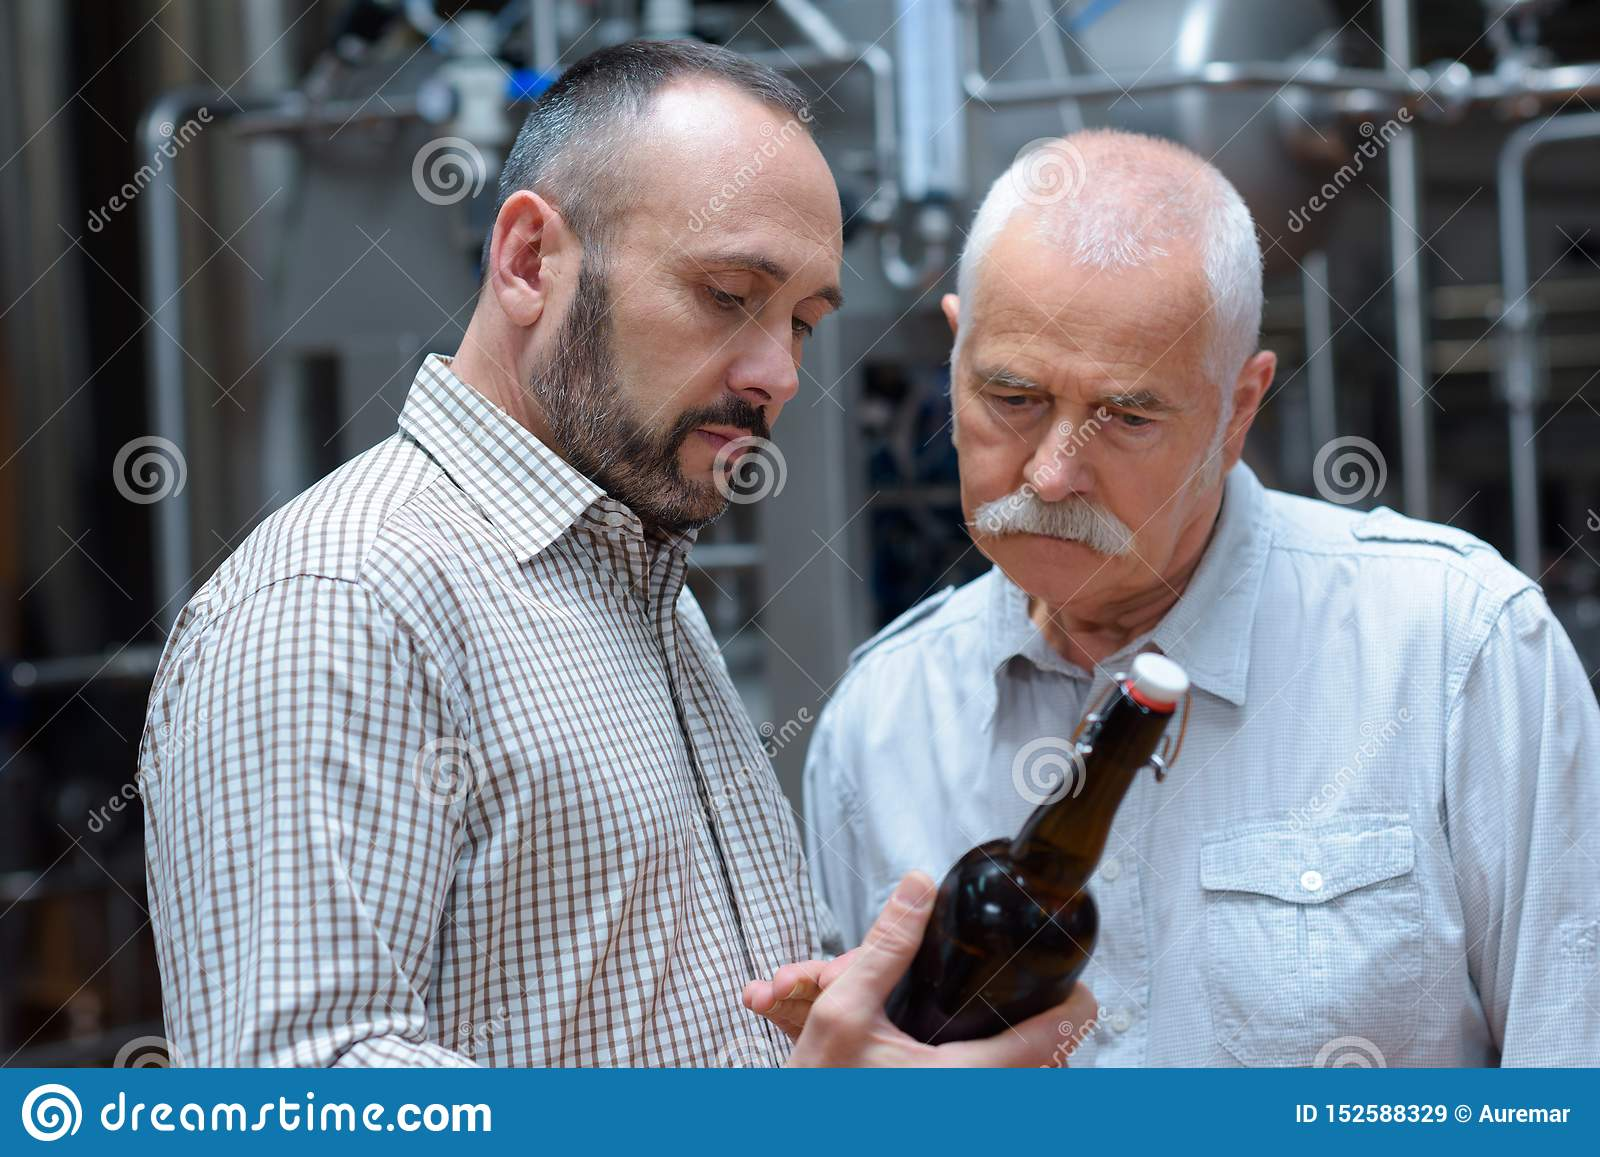 Worker and brewer holding beer bottle in crate at brewery